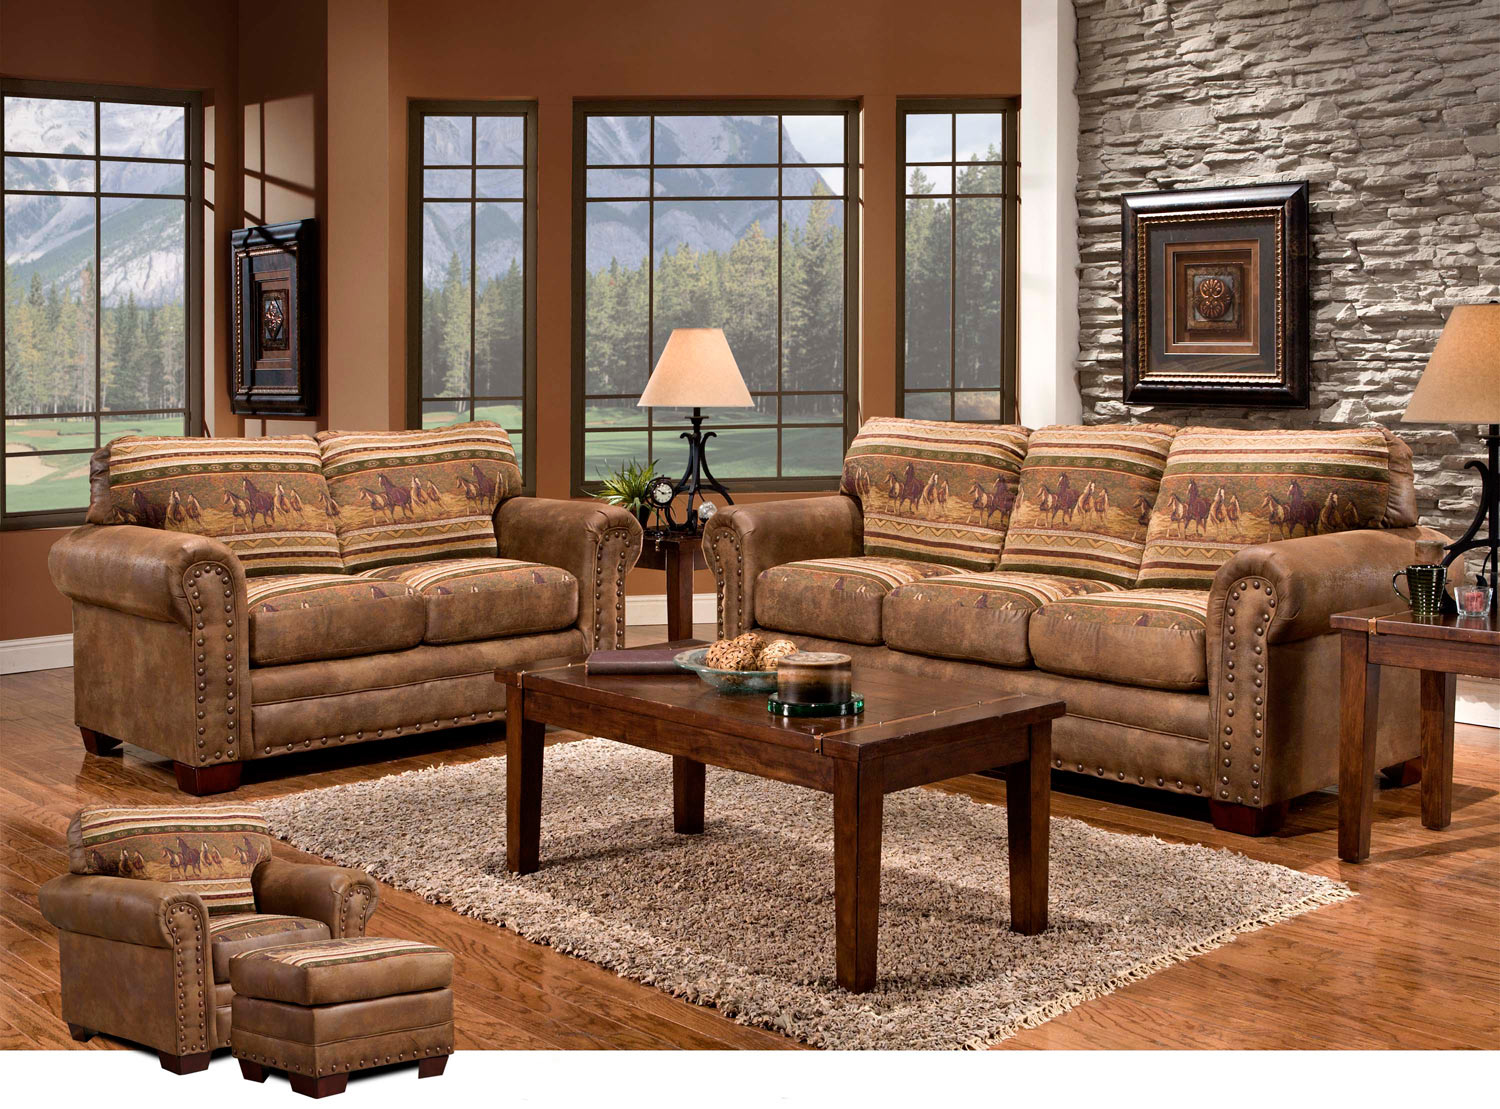 Black Forest Decor Mustang band 4 piece set